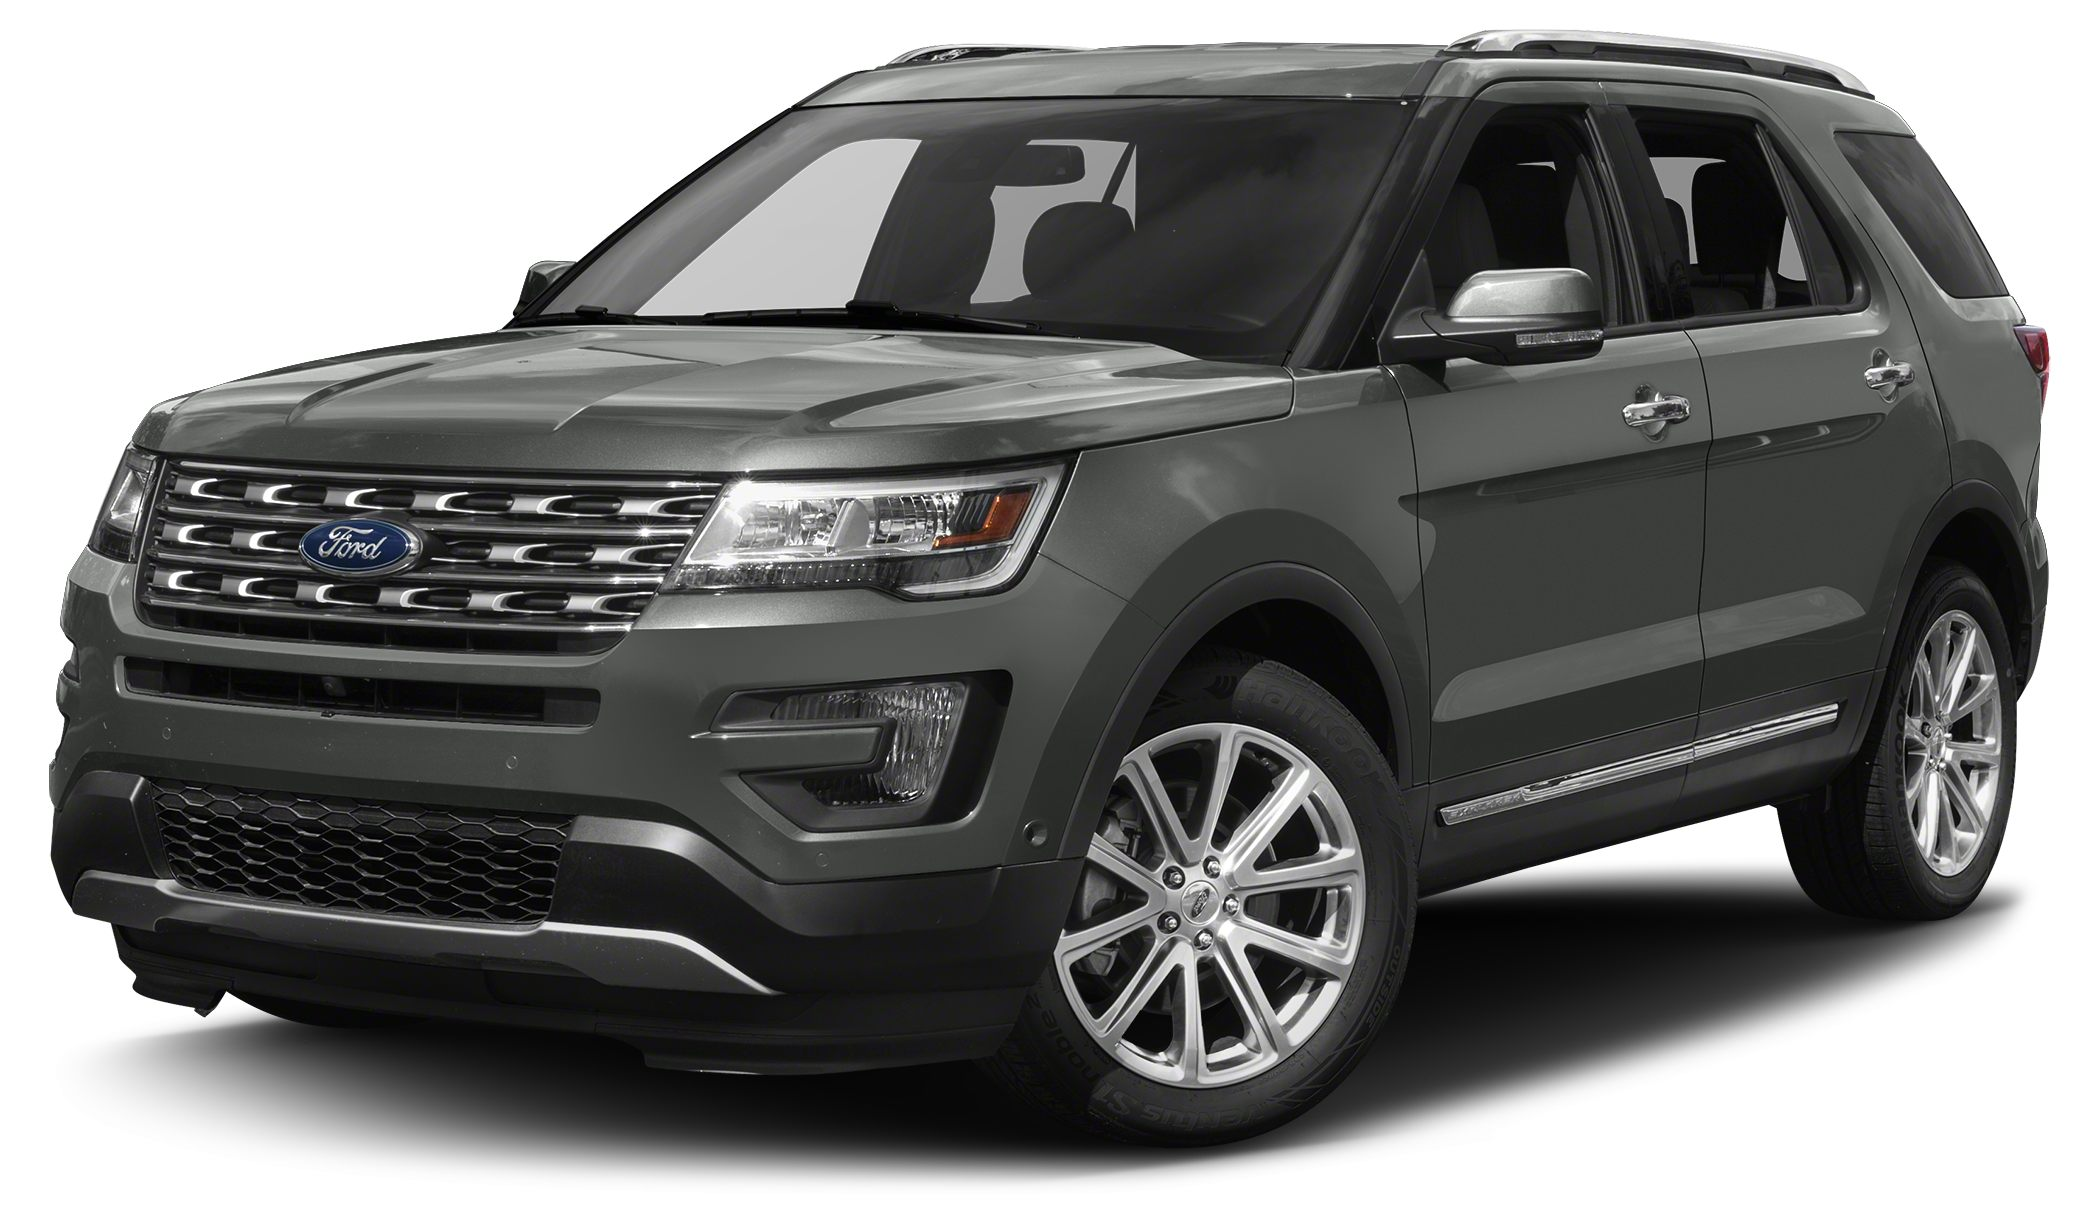 2017 Ford Explorer Limited Price includes 2500 - Retail Customer Cash Exp 07052017 1000